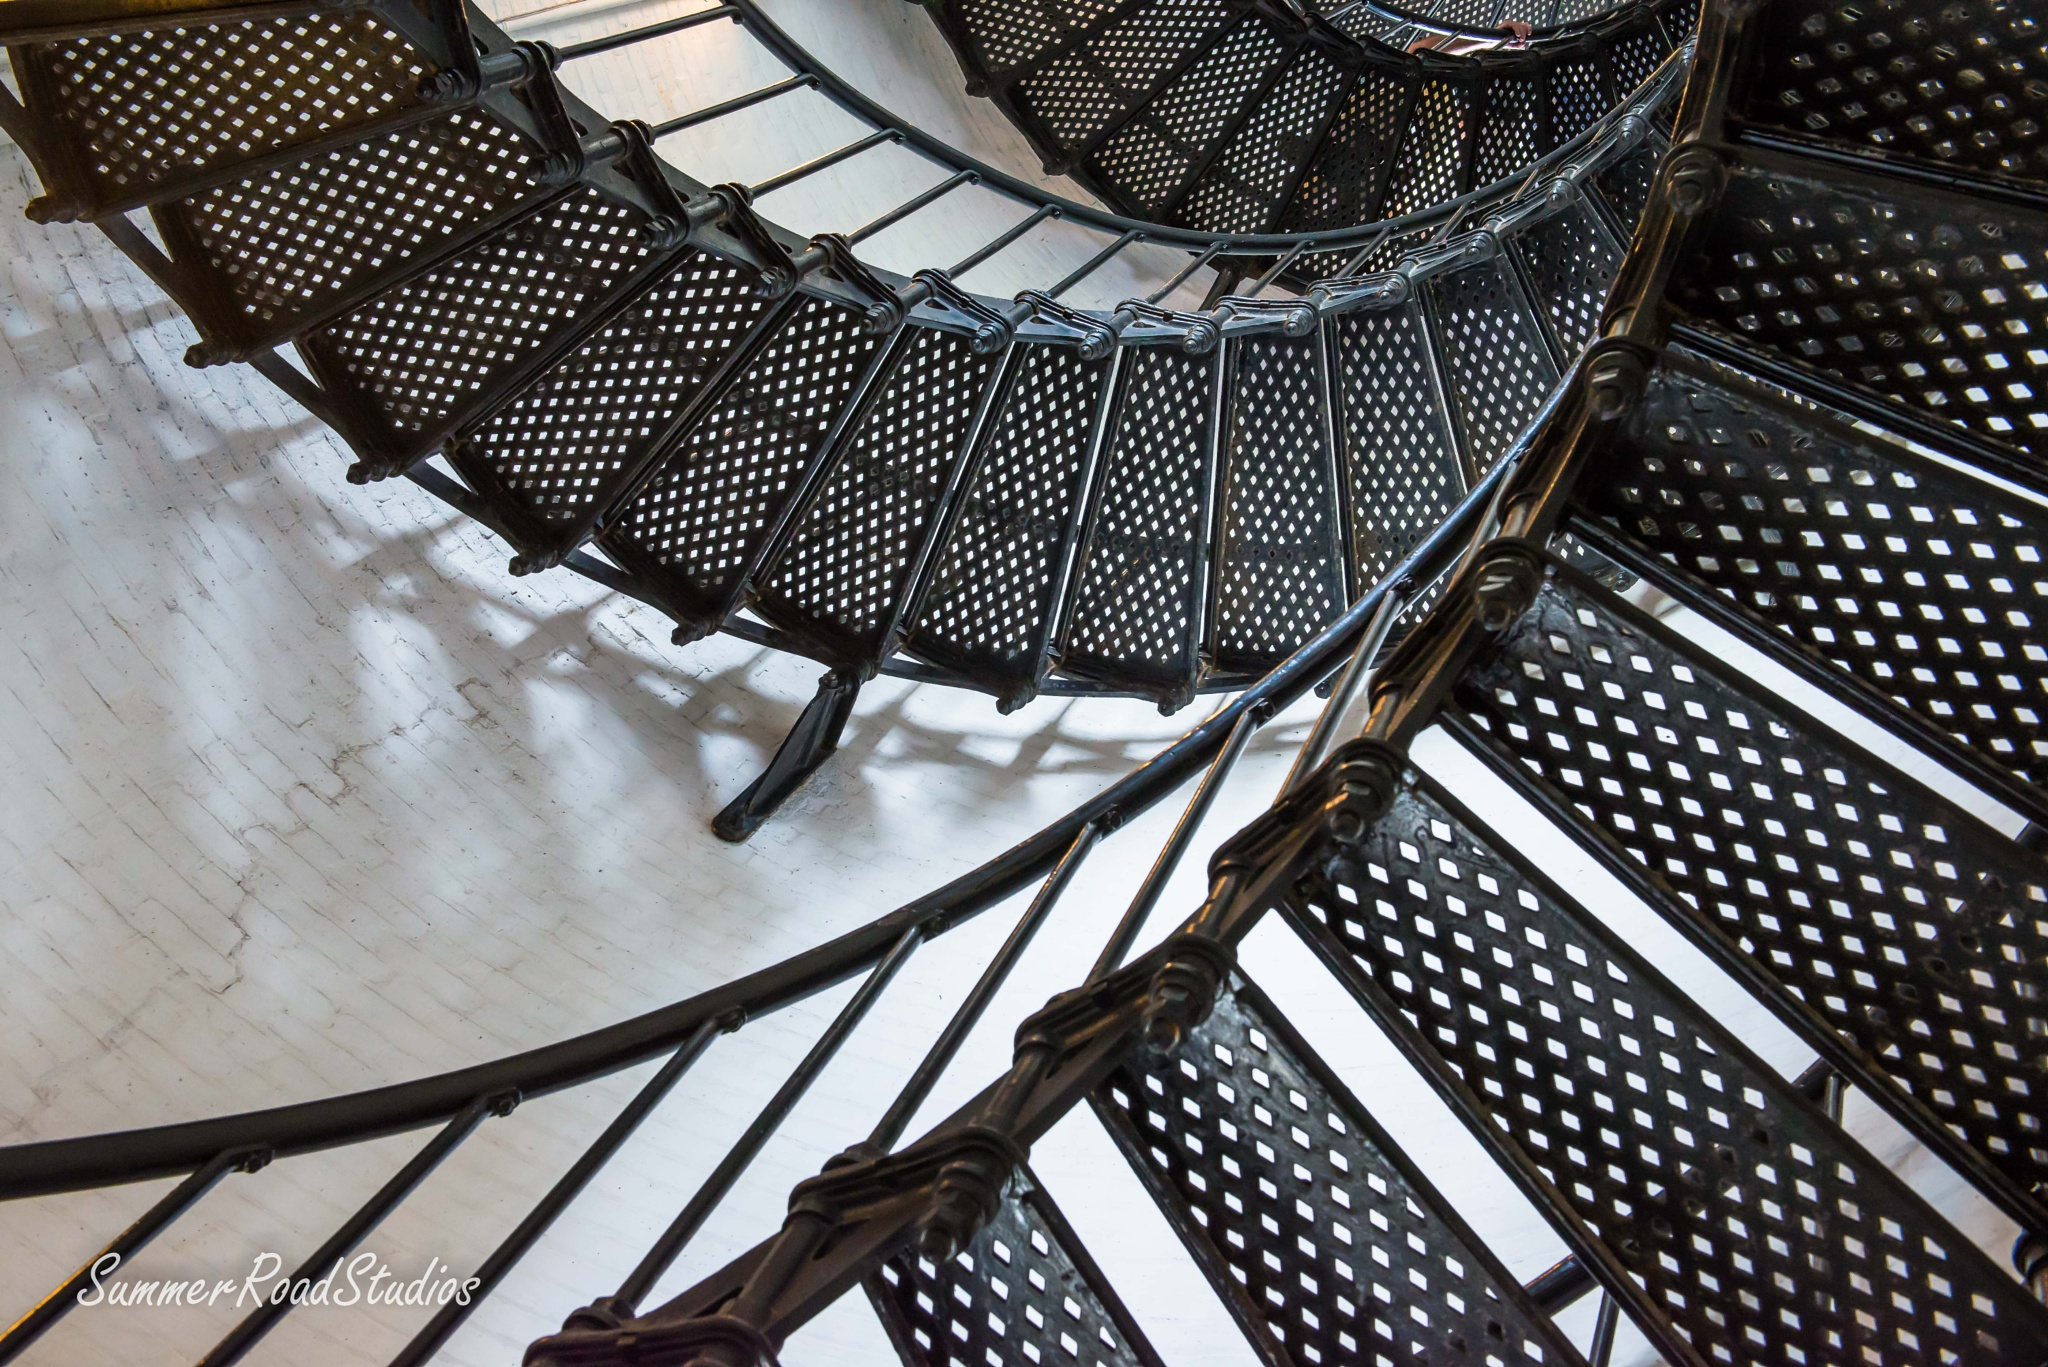 Spiral stairs. by wexfenne24